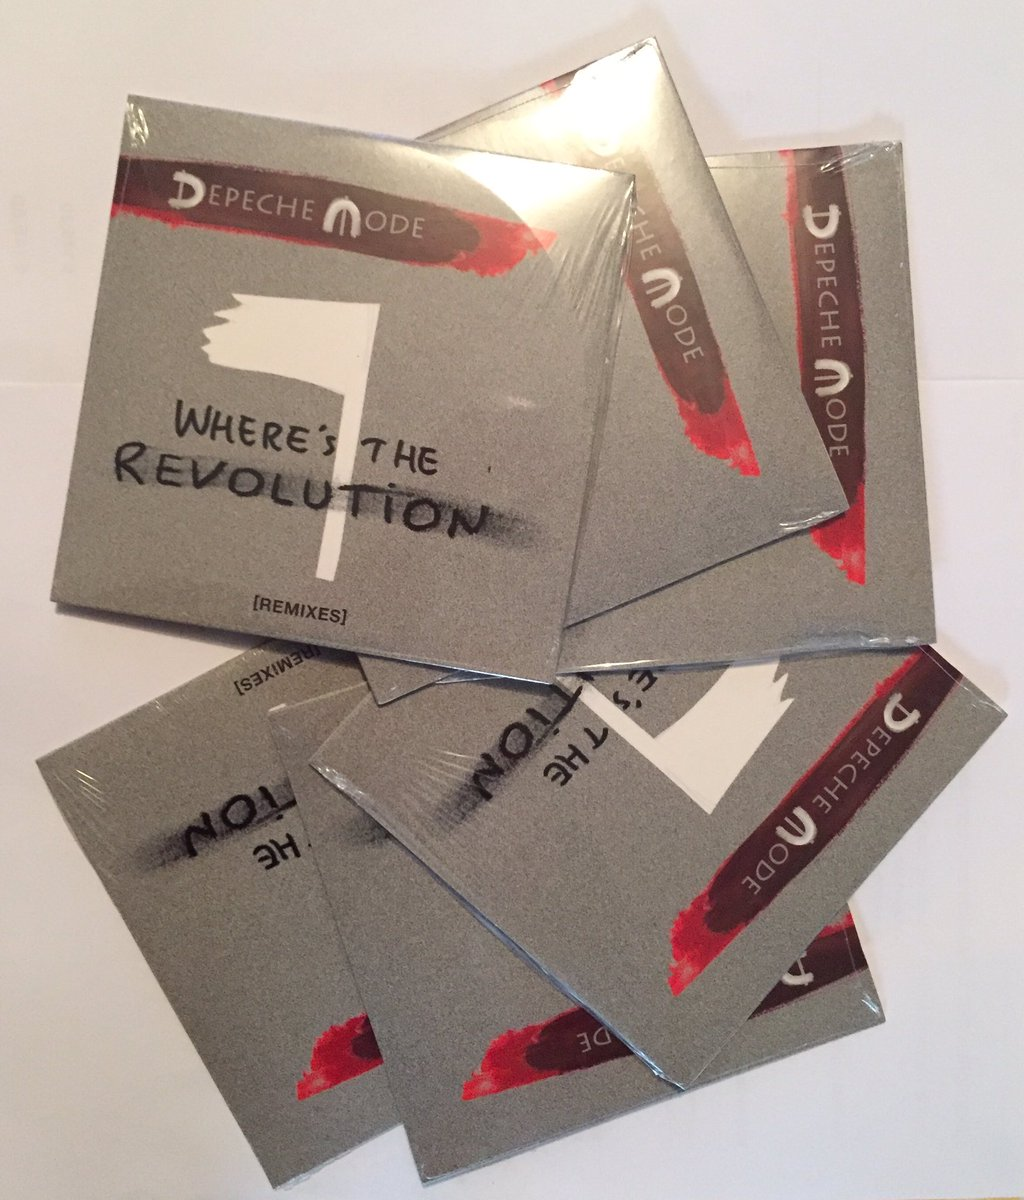 Win one of these #DepecheMode MCDs ! Enter the contest here: https://t.co/t9gAVNpzn4 https://t.co/RoP88ucC8Q